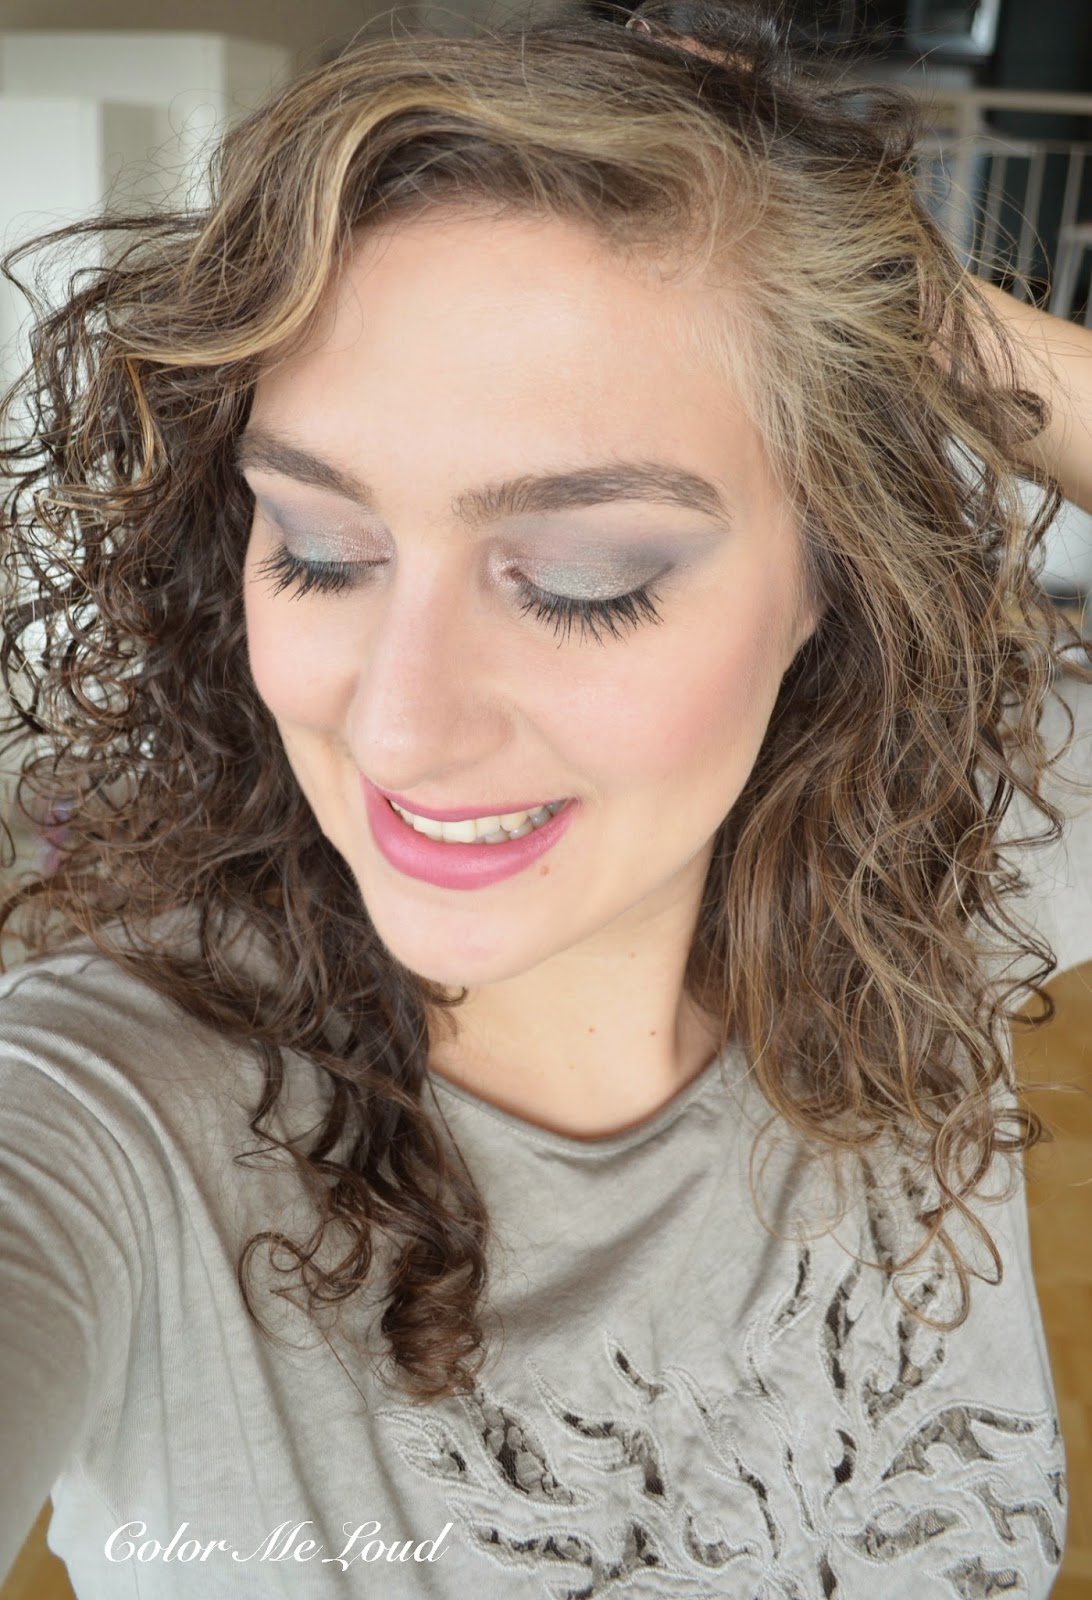 FOTD with Lancôme My Paris Eye Shadow Palette